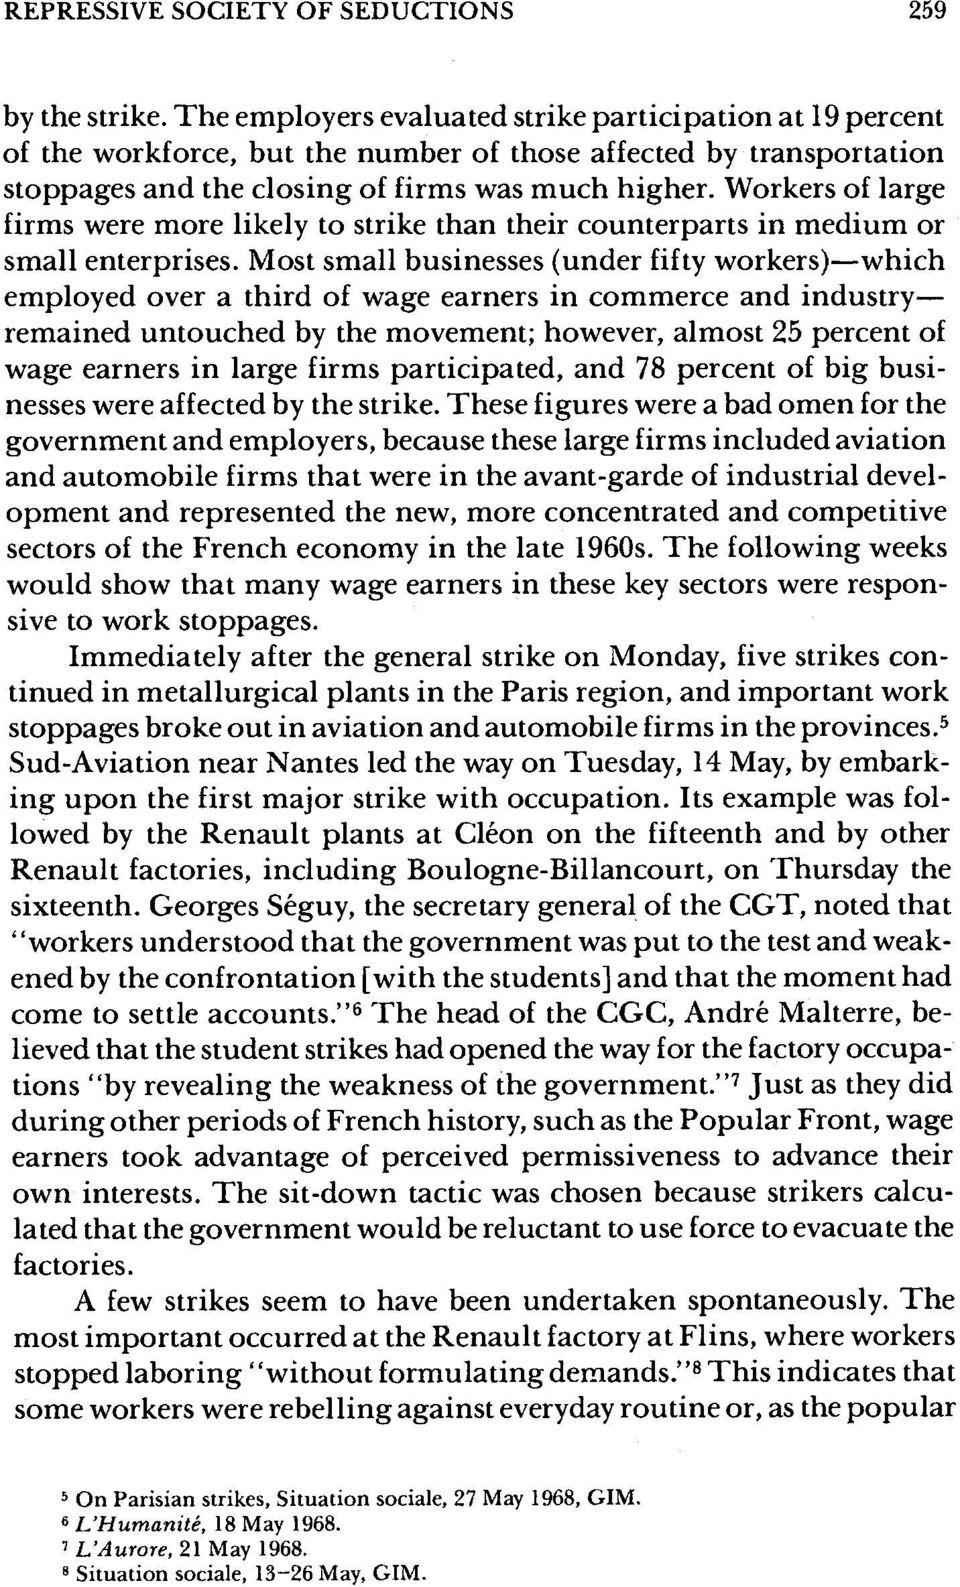 Workers of large firms were more likely to strike than their counterparts in medium or small enterprises.